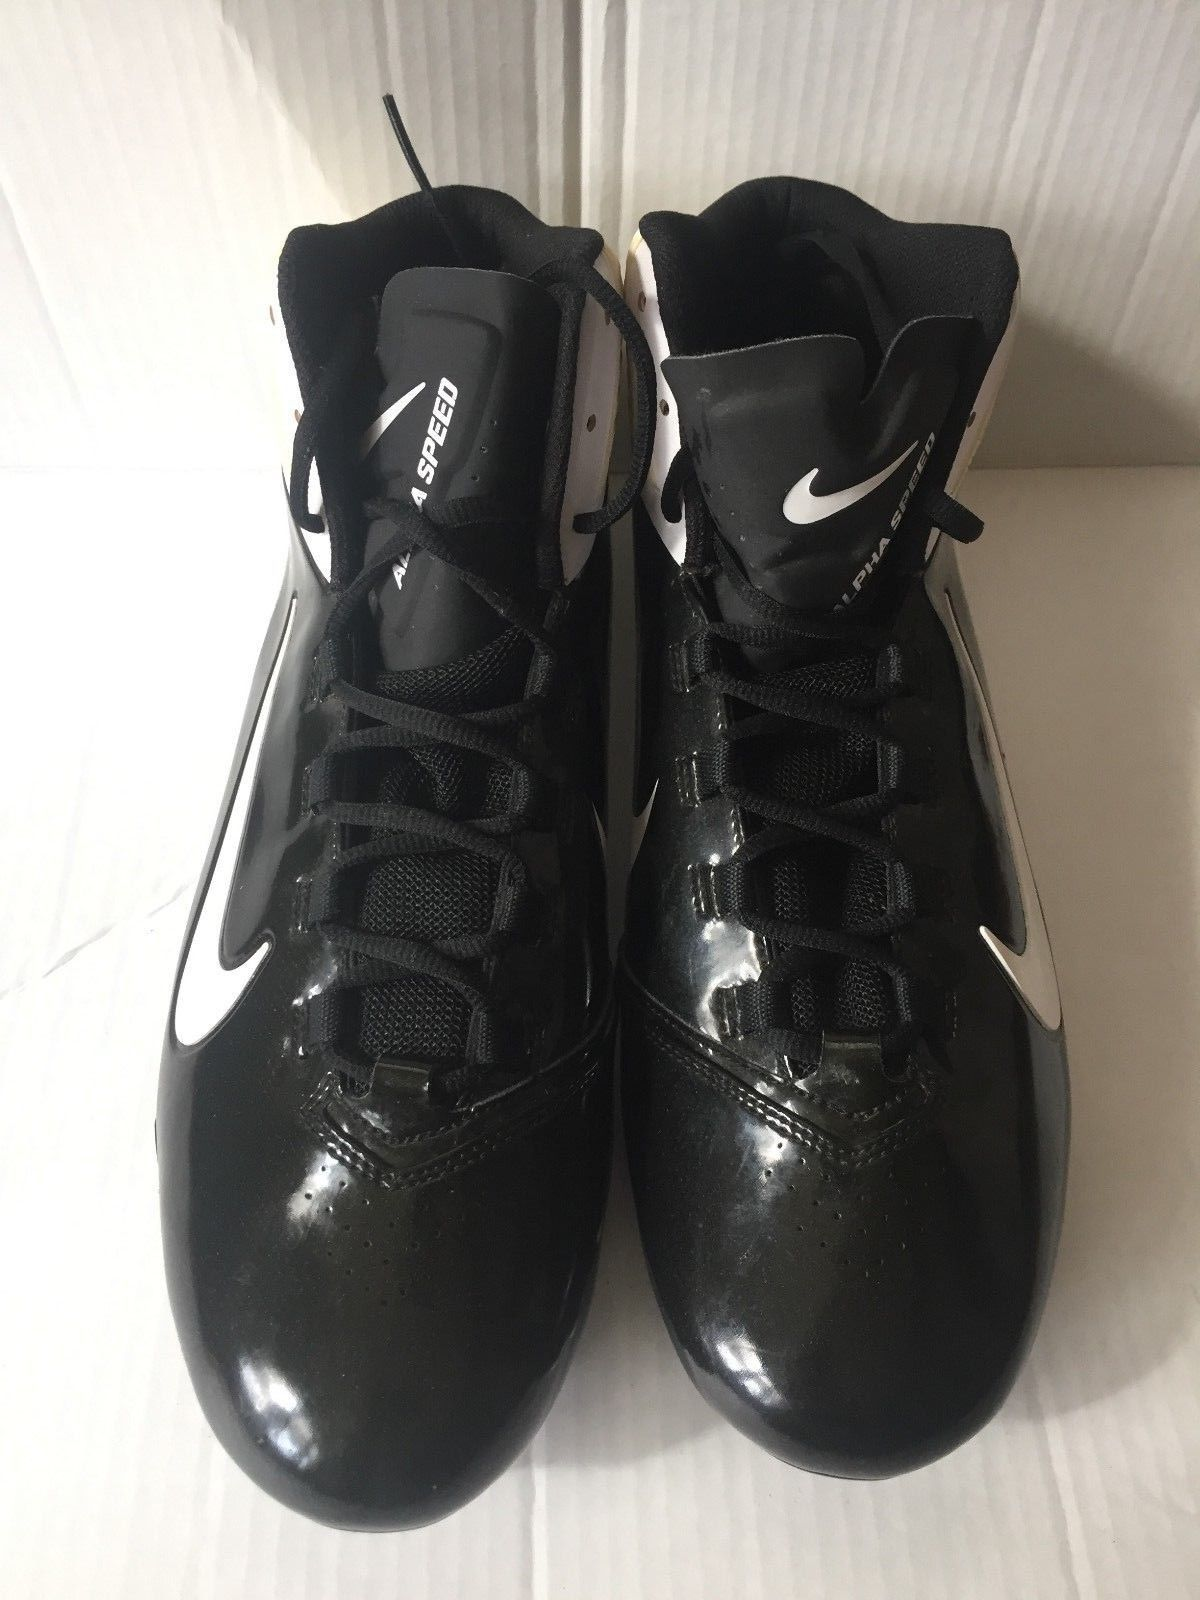 64cd7fee0 Nike Cleats Alpha Speed Td 442244 010 Nfl and 50 similar items. S l1600